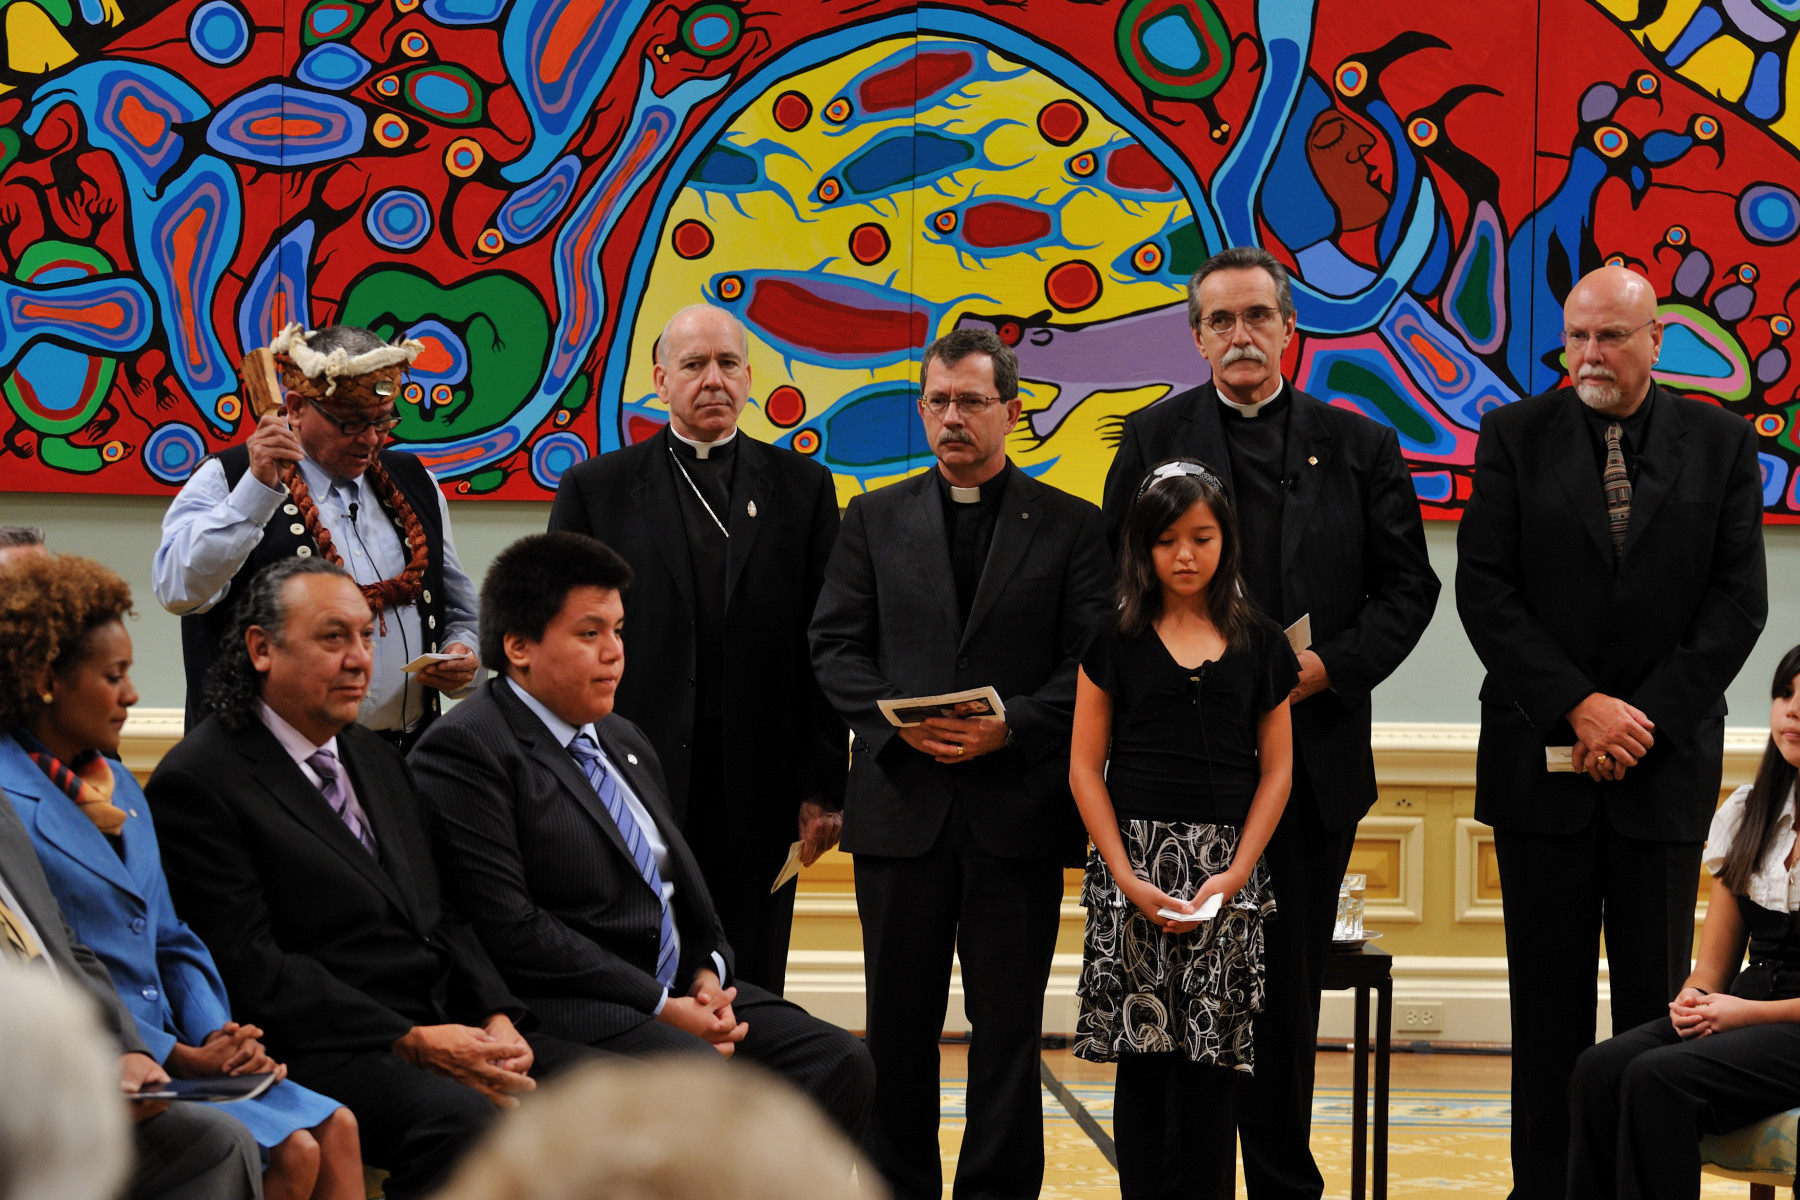 Chief Robert Joseph (survivor), Most Reverend Gerard Pettipas, Reverend Harvey Self, Archdeacon Michael Pollesel, Reverend James V. Scott, and Jadyn Toulouse (Sagamok First Nation)recited a prayer.